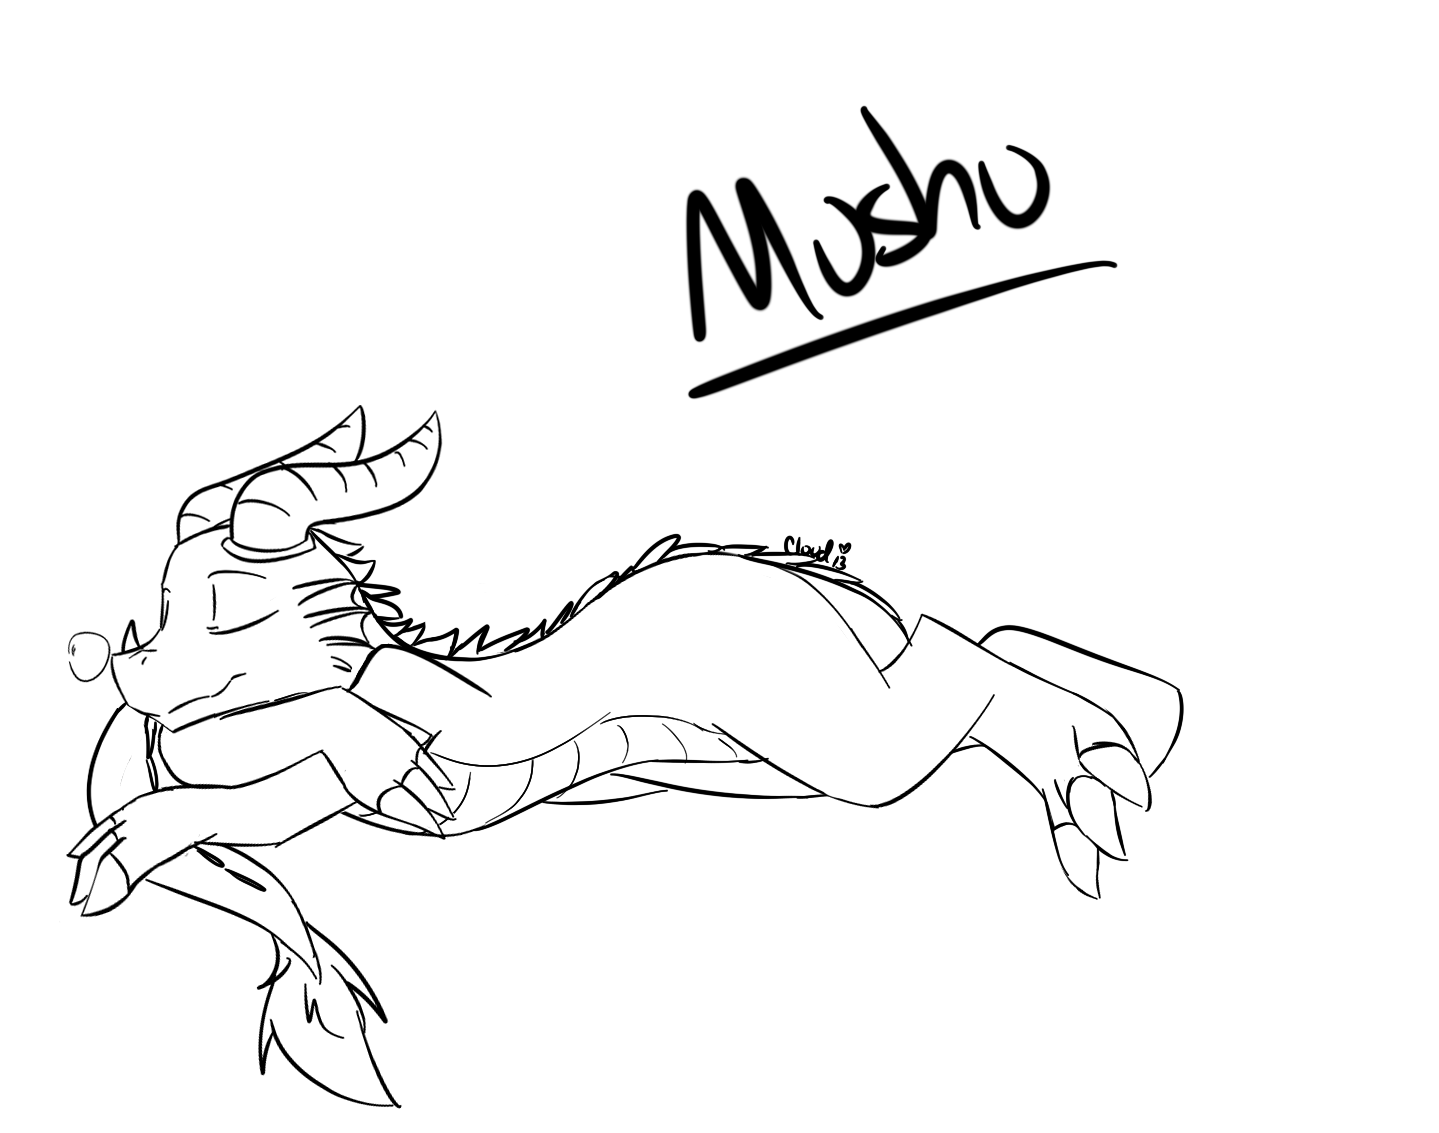 Coloring Pages Mushu Coloring Pages mushu coloring page az pages sleep mulan and 6014 mushu